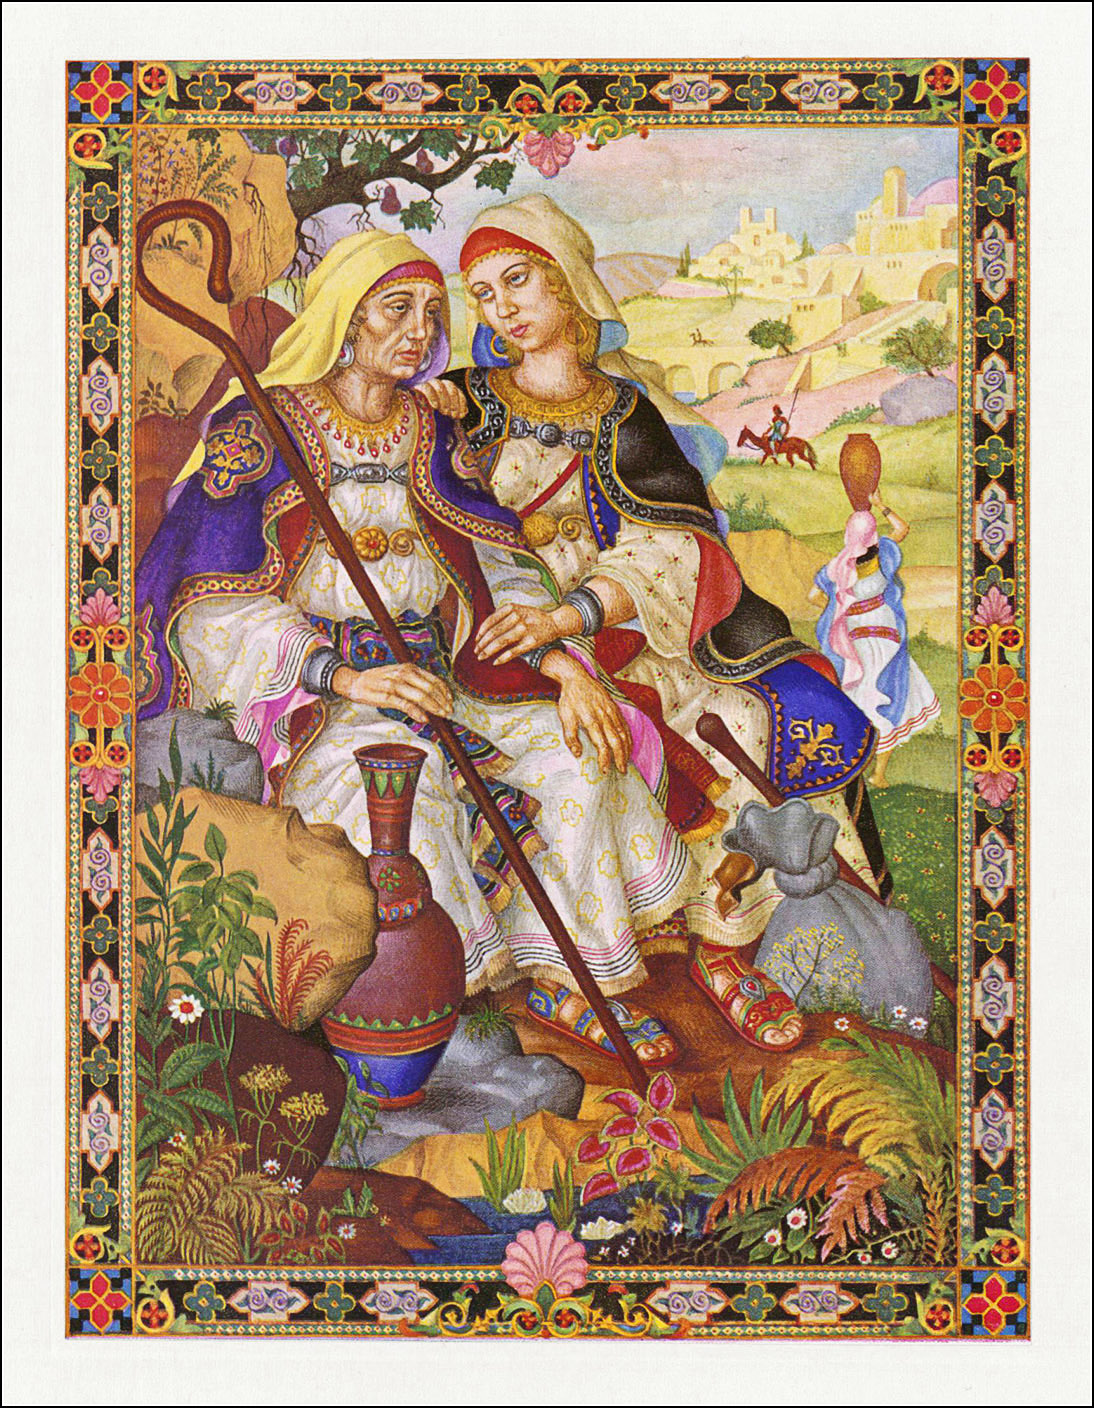 The book of Ruth Arthur Szyk